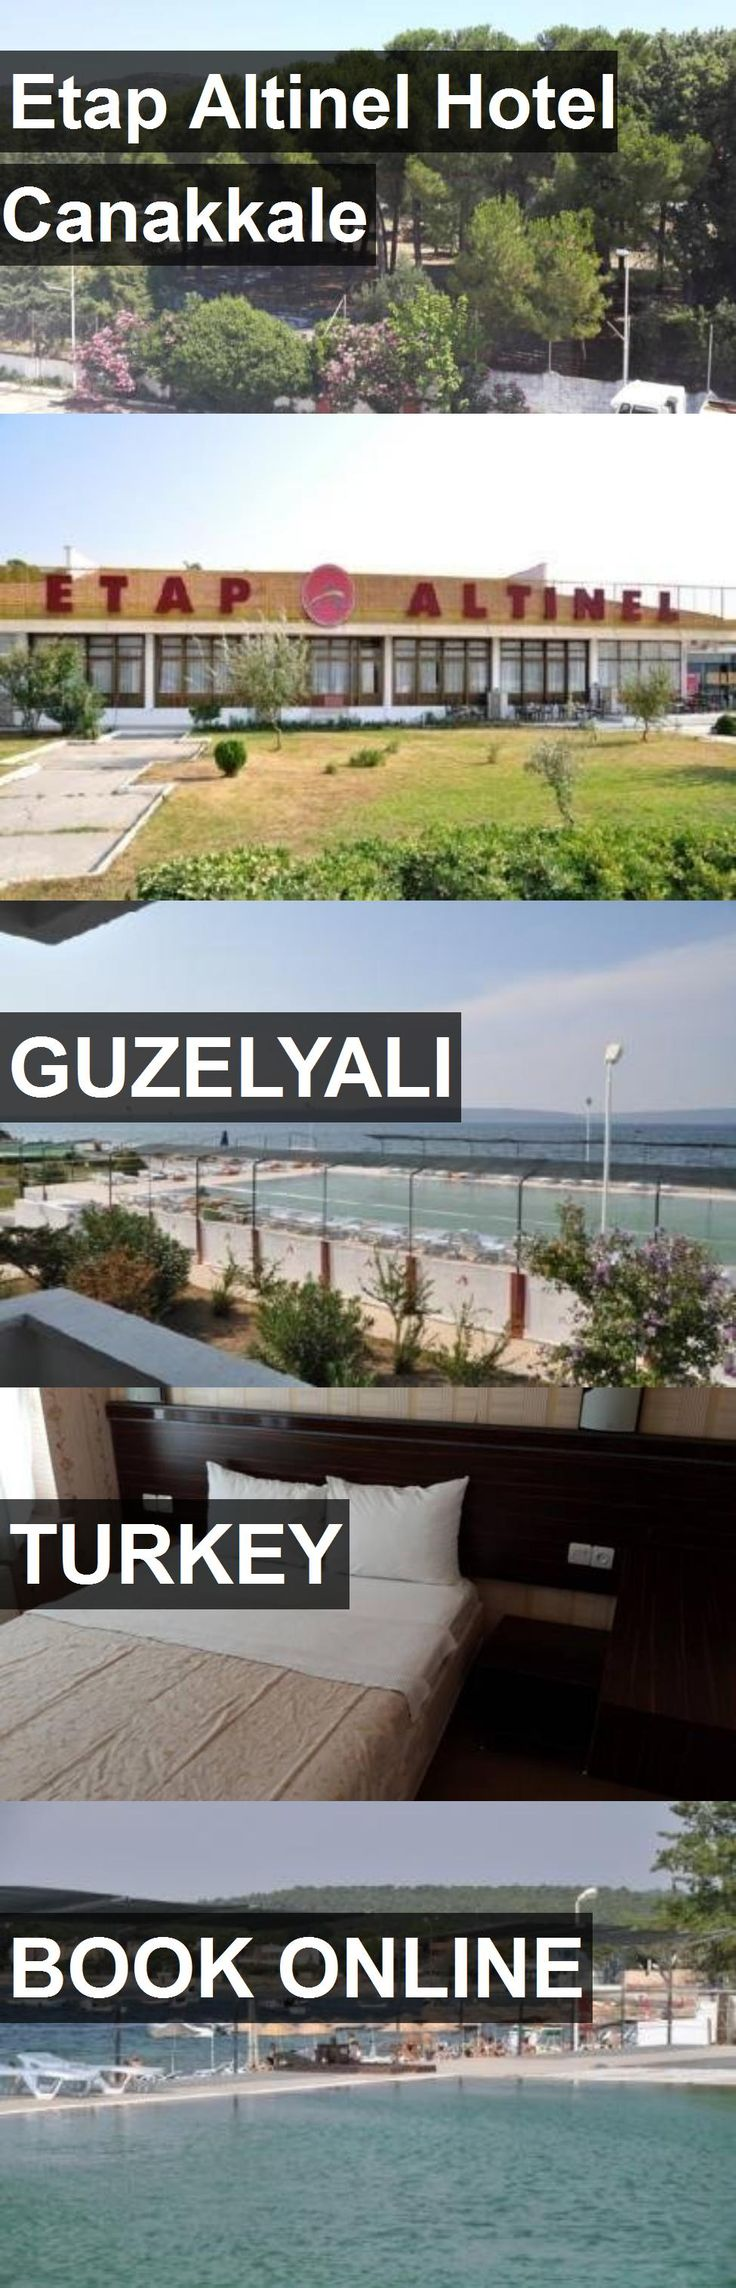 Hotel Etap Altinel Hotel Canakkale in Guzelyali, Turkey. For more information, photos, reviews and best prices please follow the link. #Turkey #Guzelyali #EtapAltinelHotelCanakkale #hotel #travel #vacation